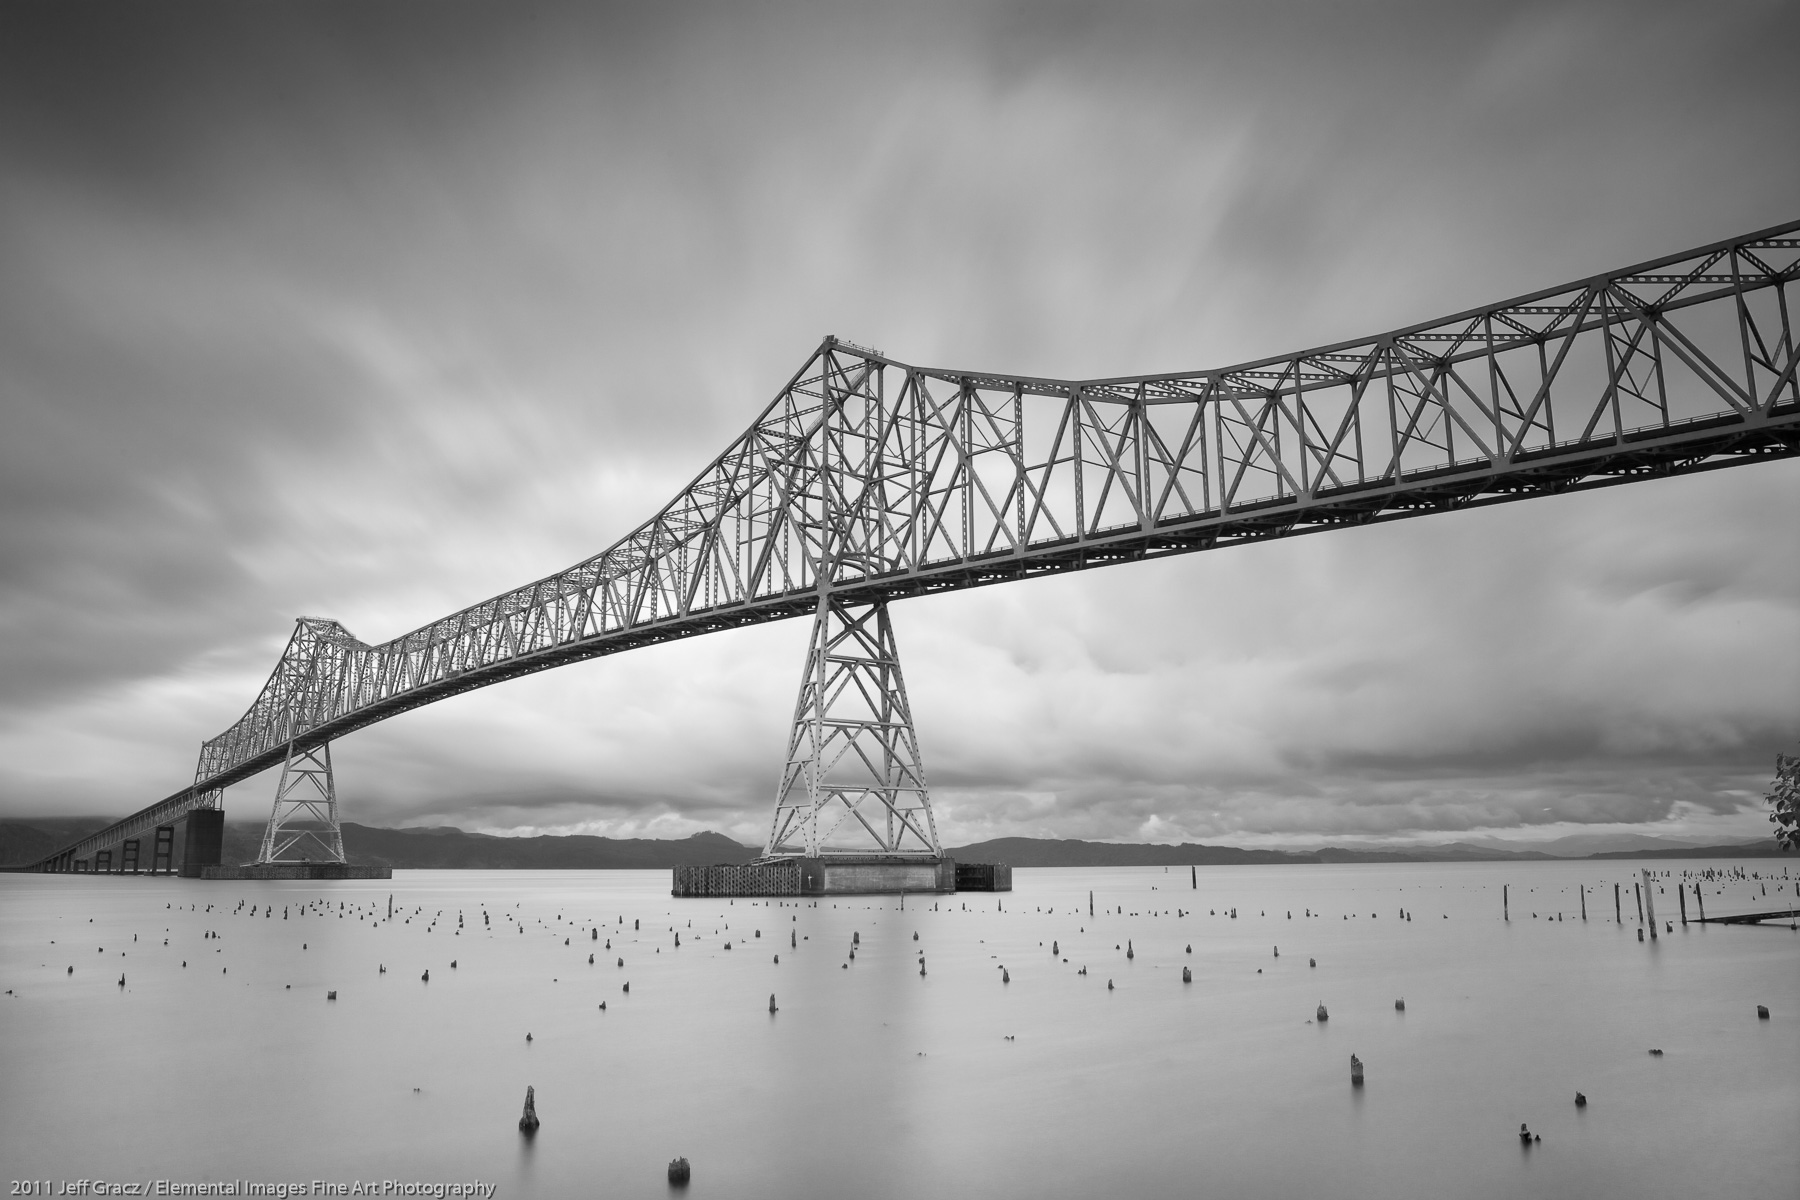 Astoria Bridge I | Astoria | OR | USA - © 2011 Jeff Gracz / Elemental Images Fine Art Photography - All Rights Reserved Worldwide